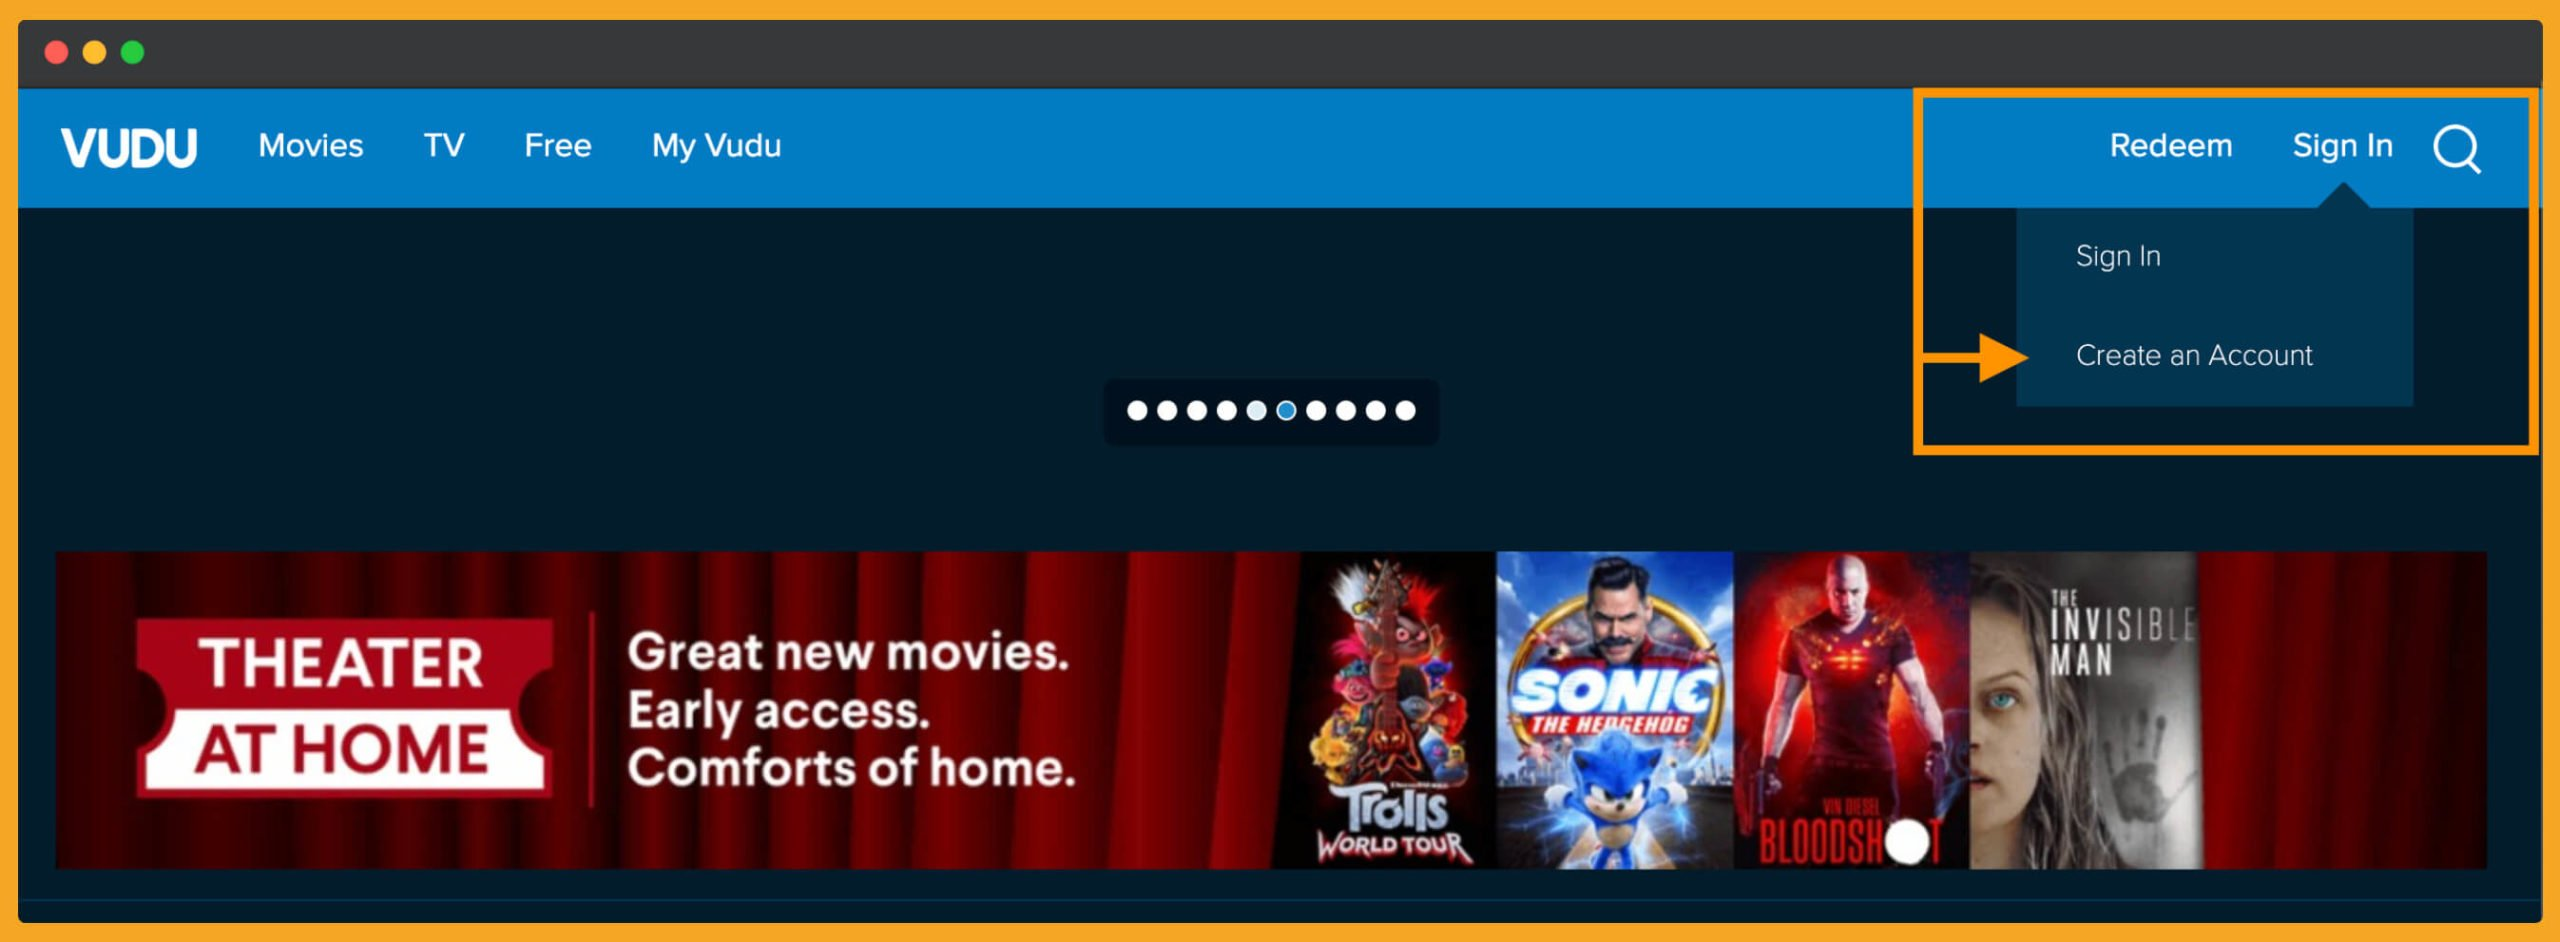 how-to-Create-an-Account-on-Vudu